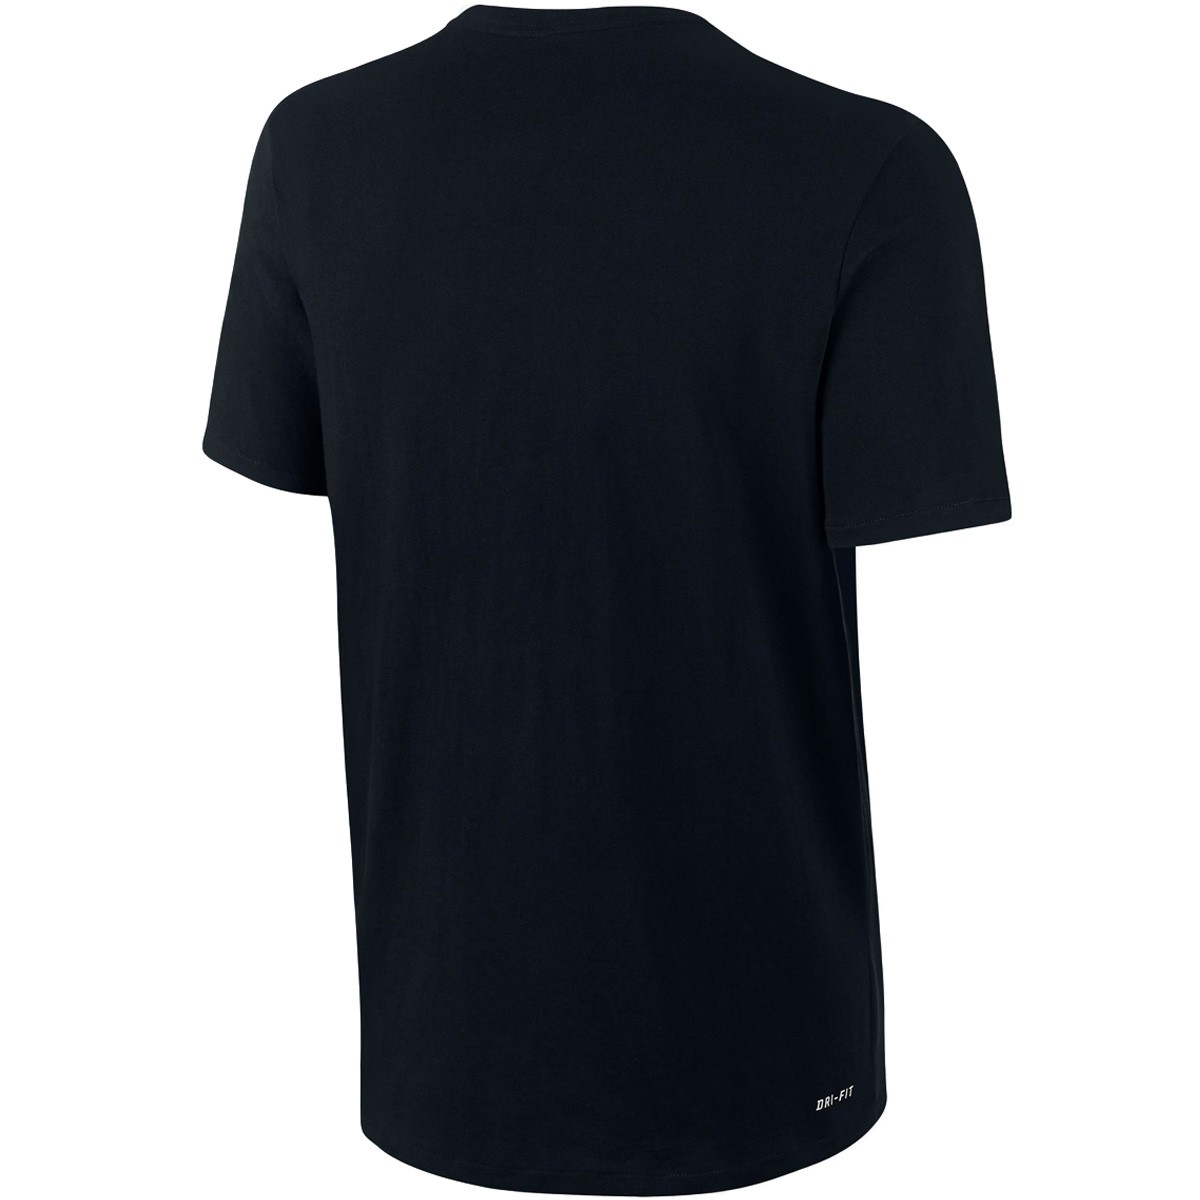 Black t shirt v shape -  Black T Shirt V Shape Nike Sb Dri Fit Solid Download